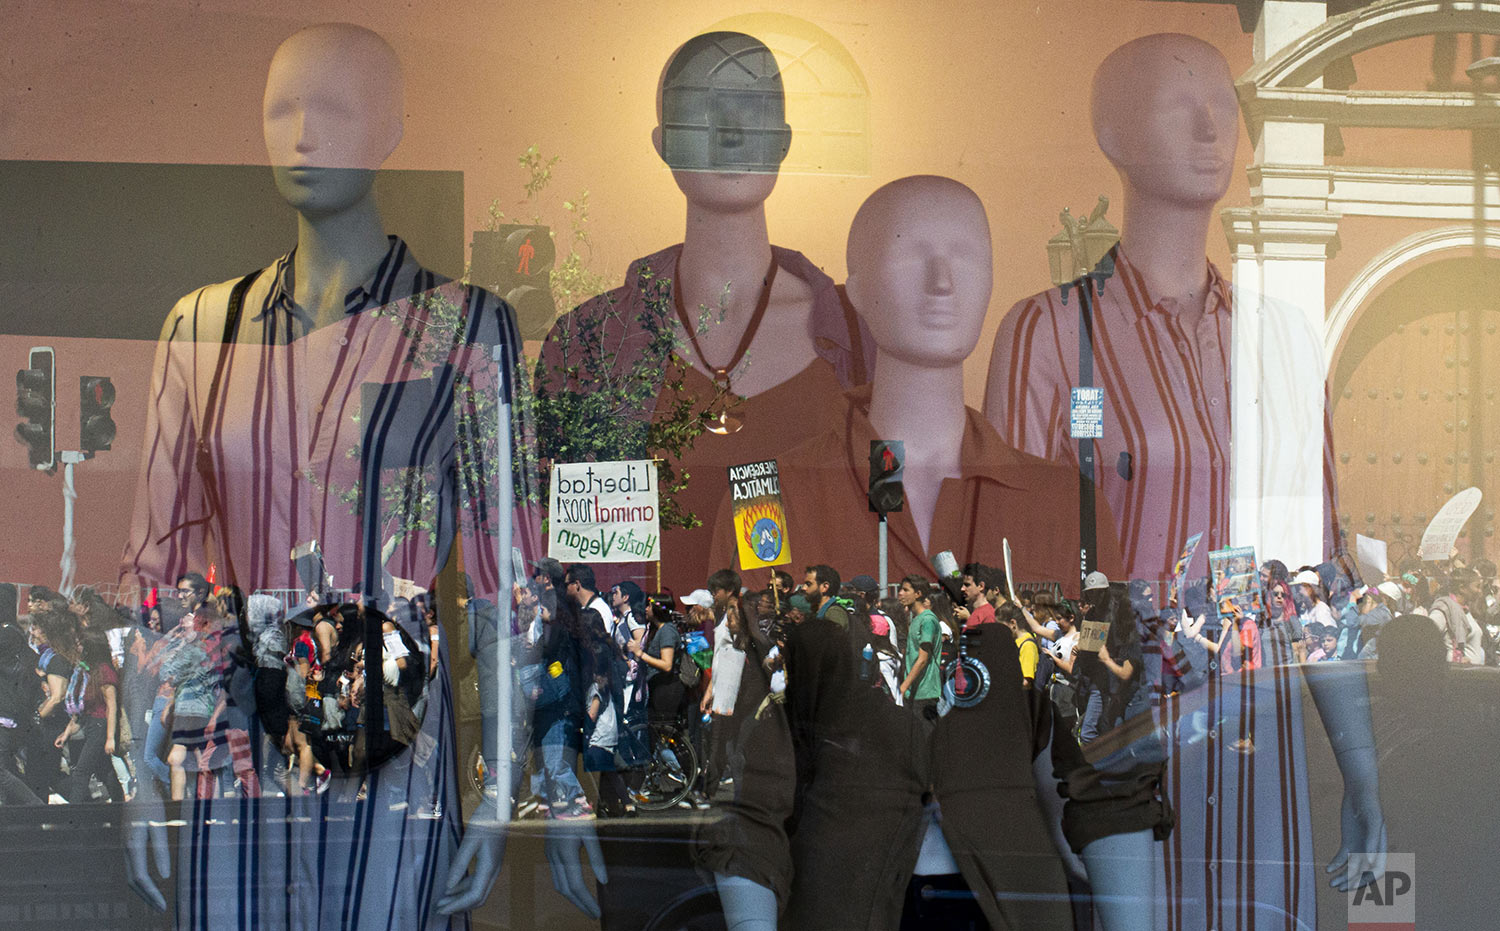 Demonstrators taking part in a global protest on climate change are reflected on a clothing store window, in Santiago, Chile, on Friday, Sept. 20, 2019. Throughout the world Friday, young people banded together to demand that world leaders headed to a United Nations summit in New York step up their efforts to combat climate change. (AP Photo/Esteban Felix)